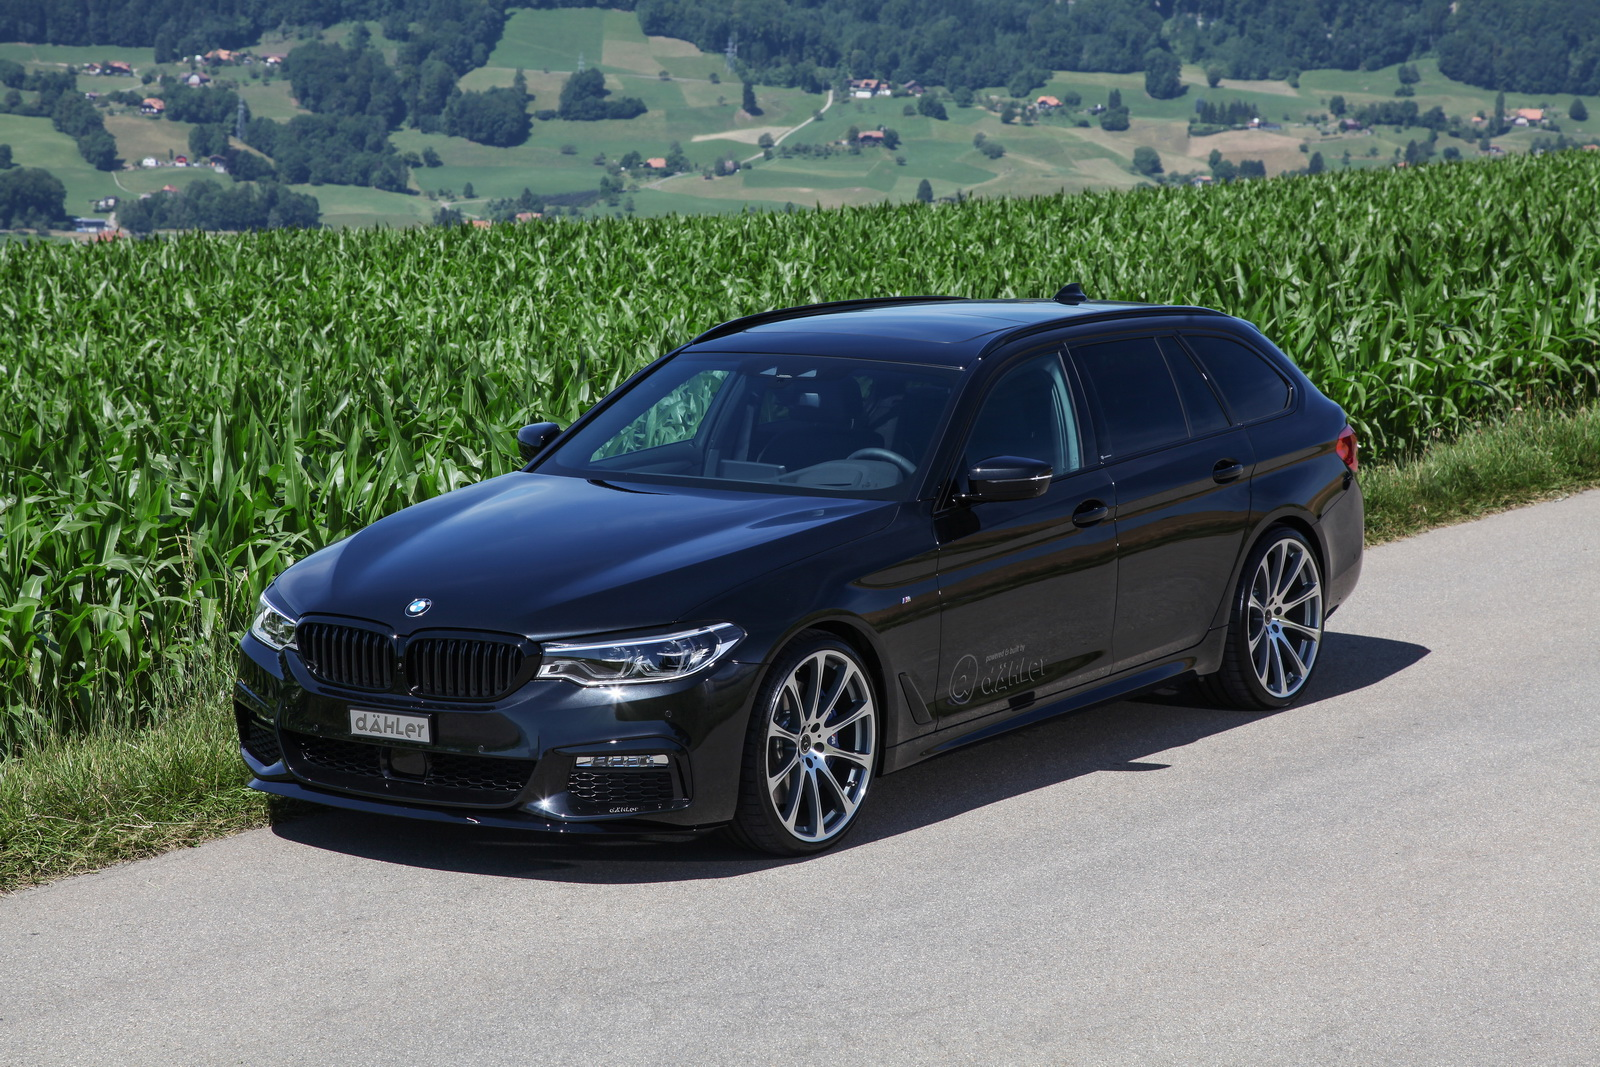 BMW_540i_Touring_by_Dahler_18